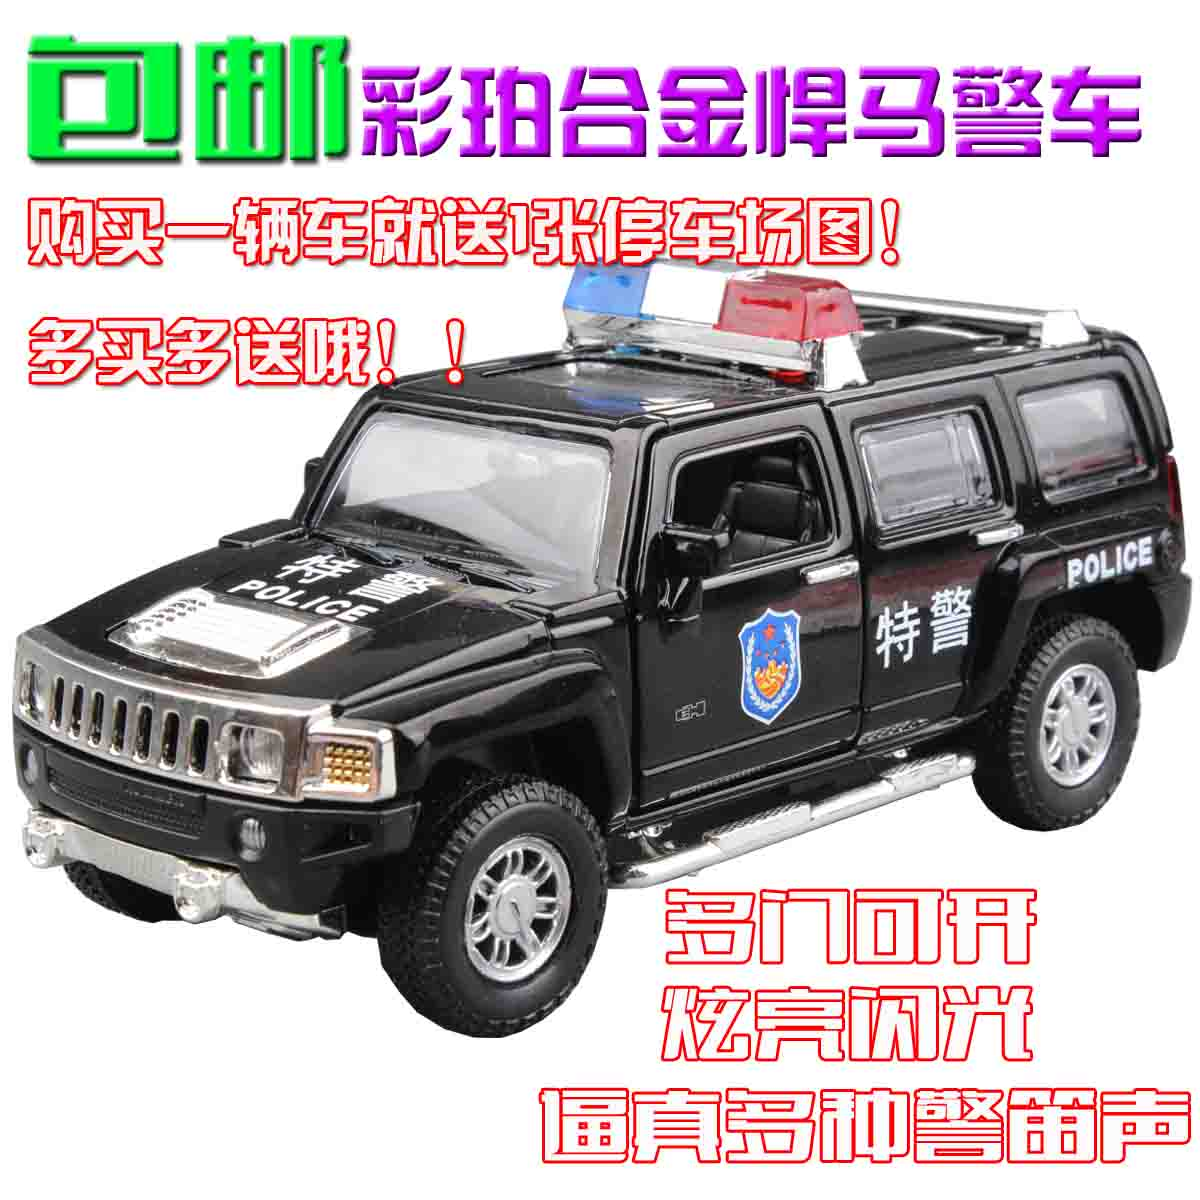 Caipo hummer h3 police car toy police car pull back police car alloy car model sound and light children toy car